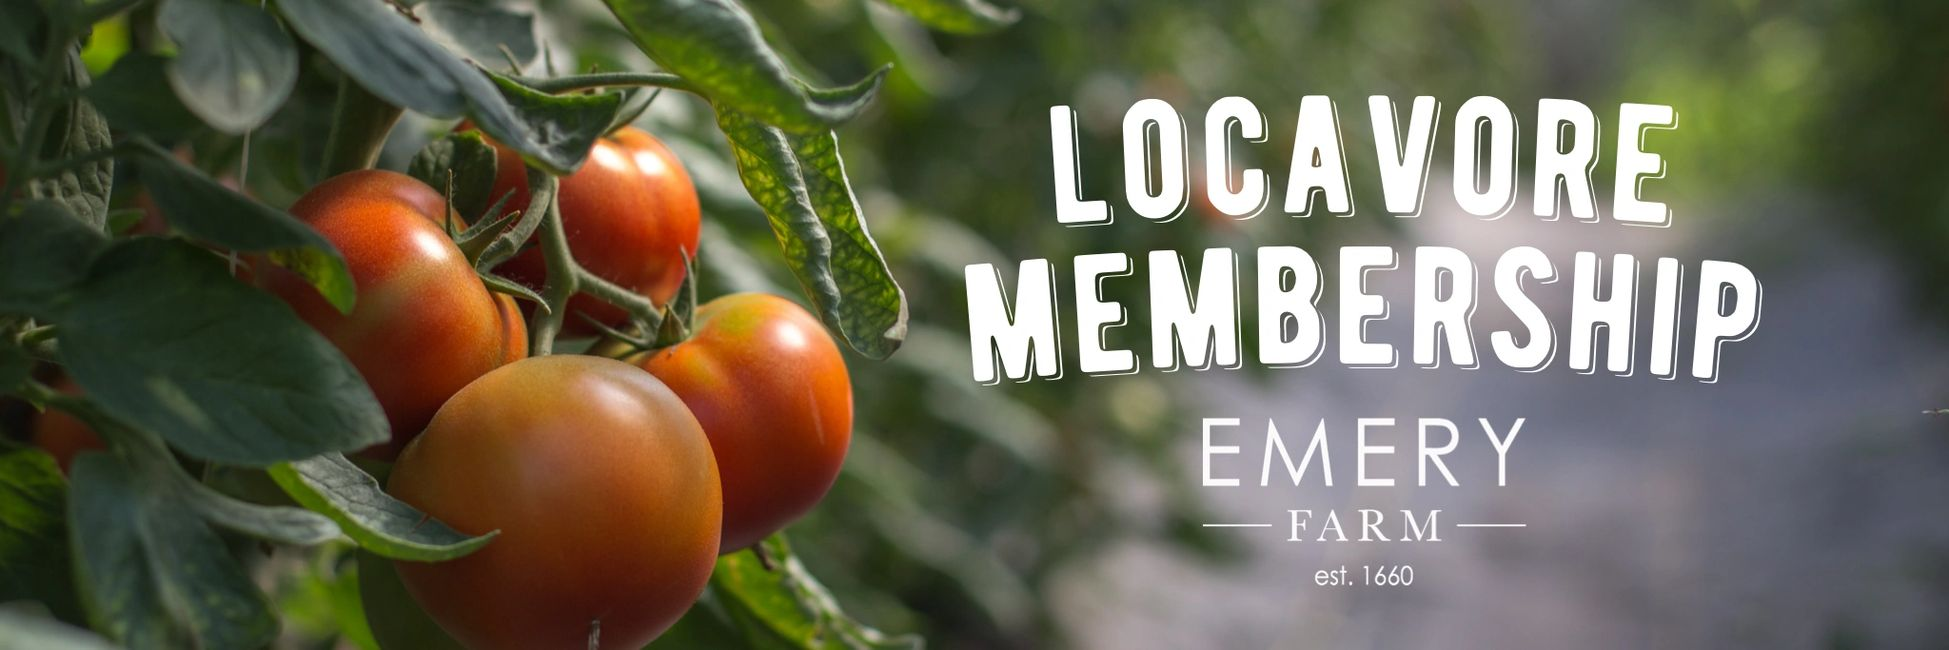 Emery Farm CSA with twist - Join our Locavore Membership